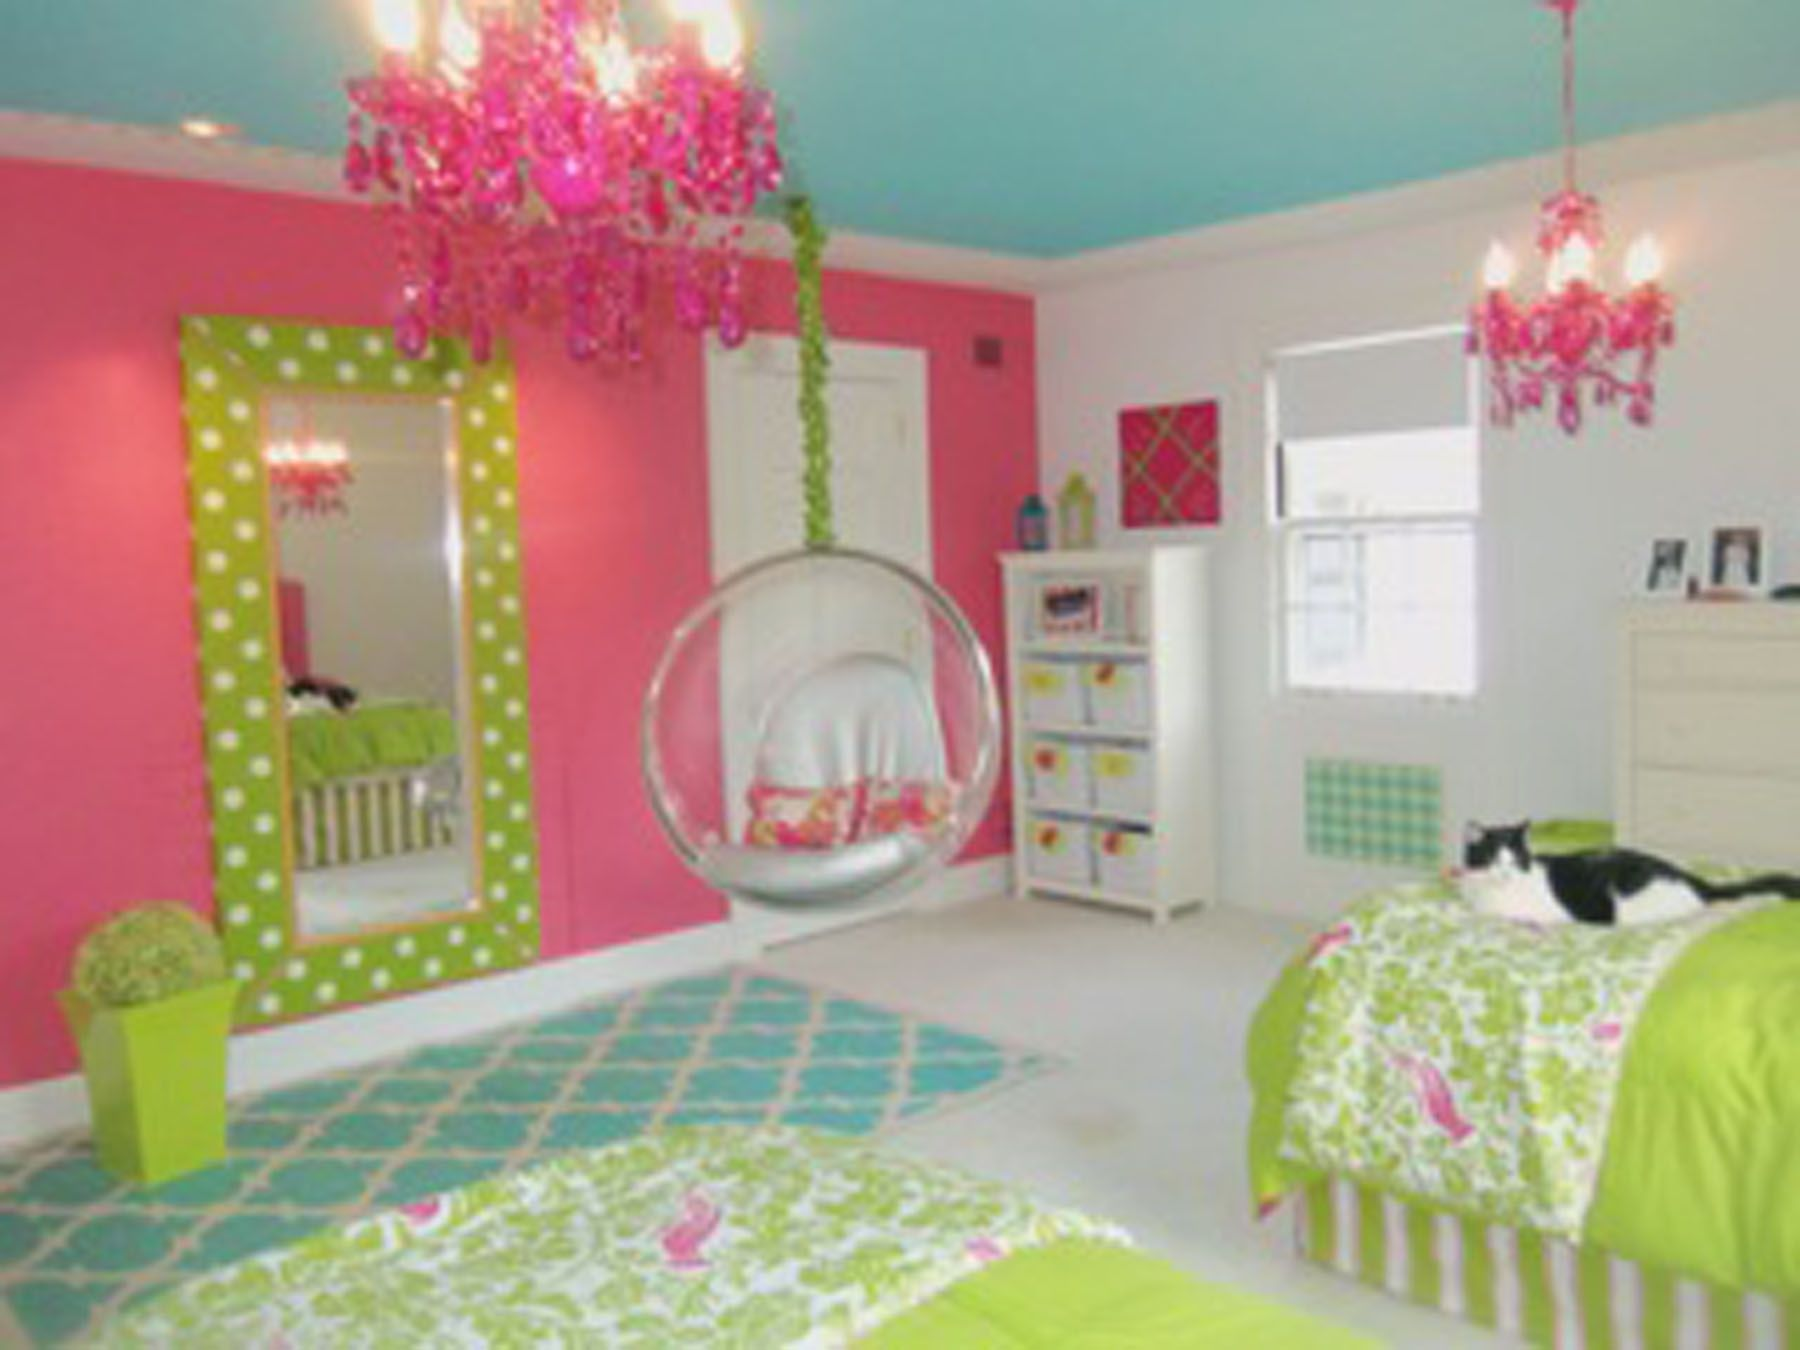 Tween Girl Room Decor Teenage Room Decor Pinterest Cutie Teen Bedroom Dcor With Wall